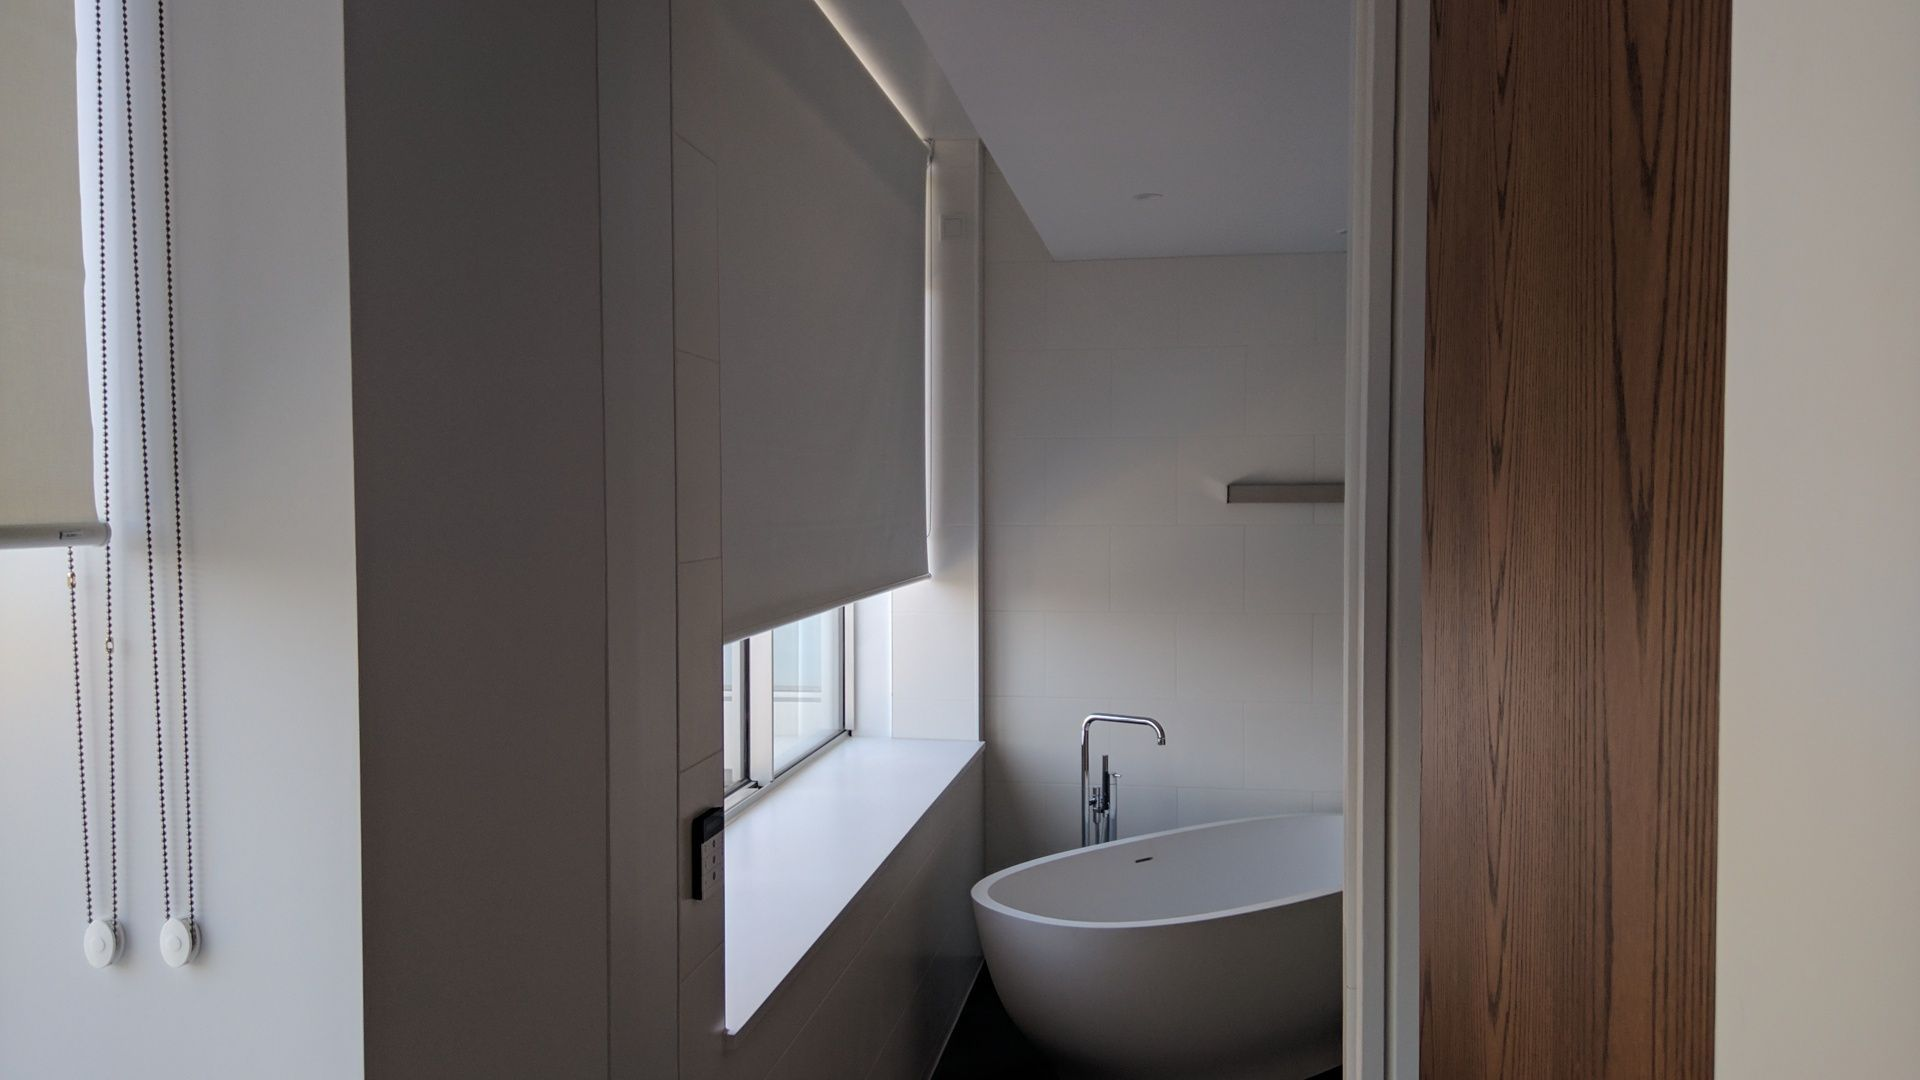 blackout roller blind fitted for bathroom window in apartment in the rh pinterest com